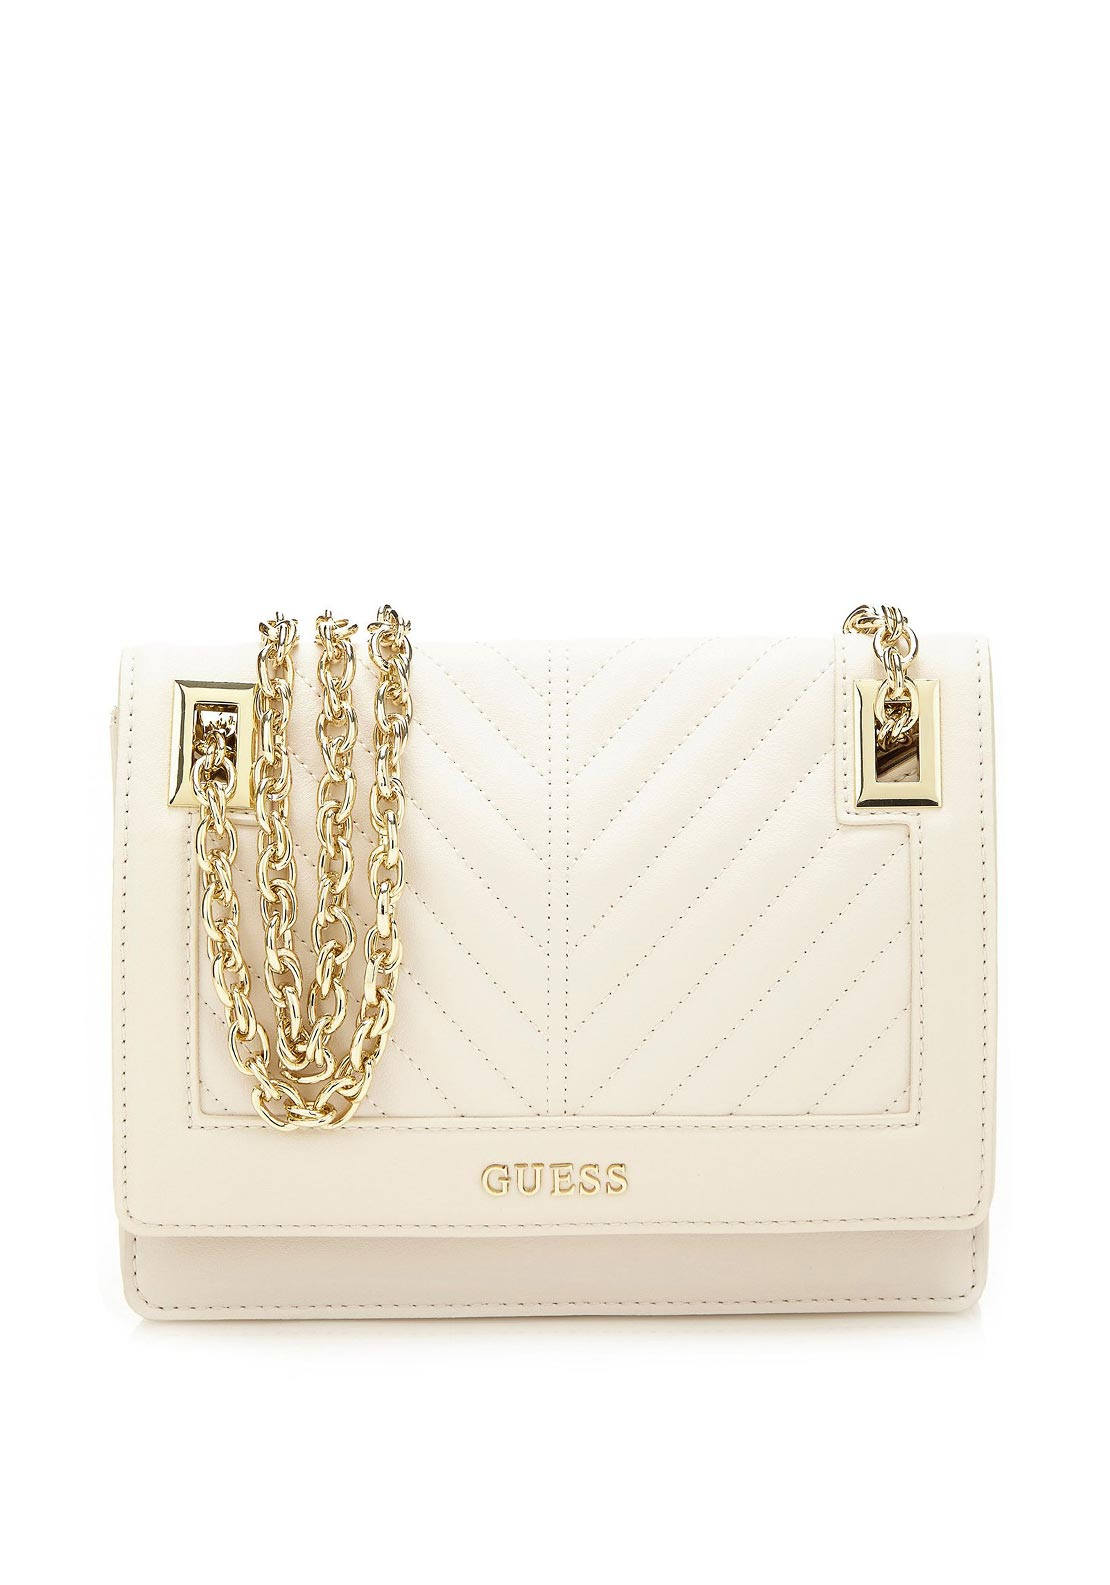 Guess Addison Convertible Crossbody Bag, Ivory